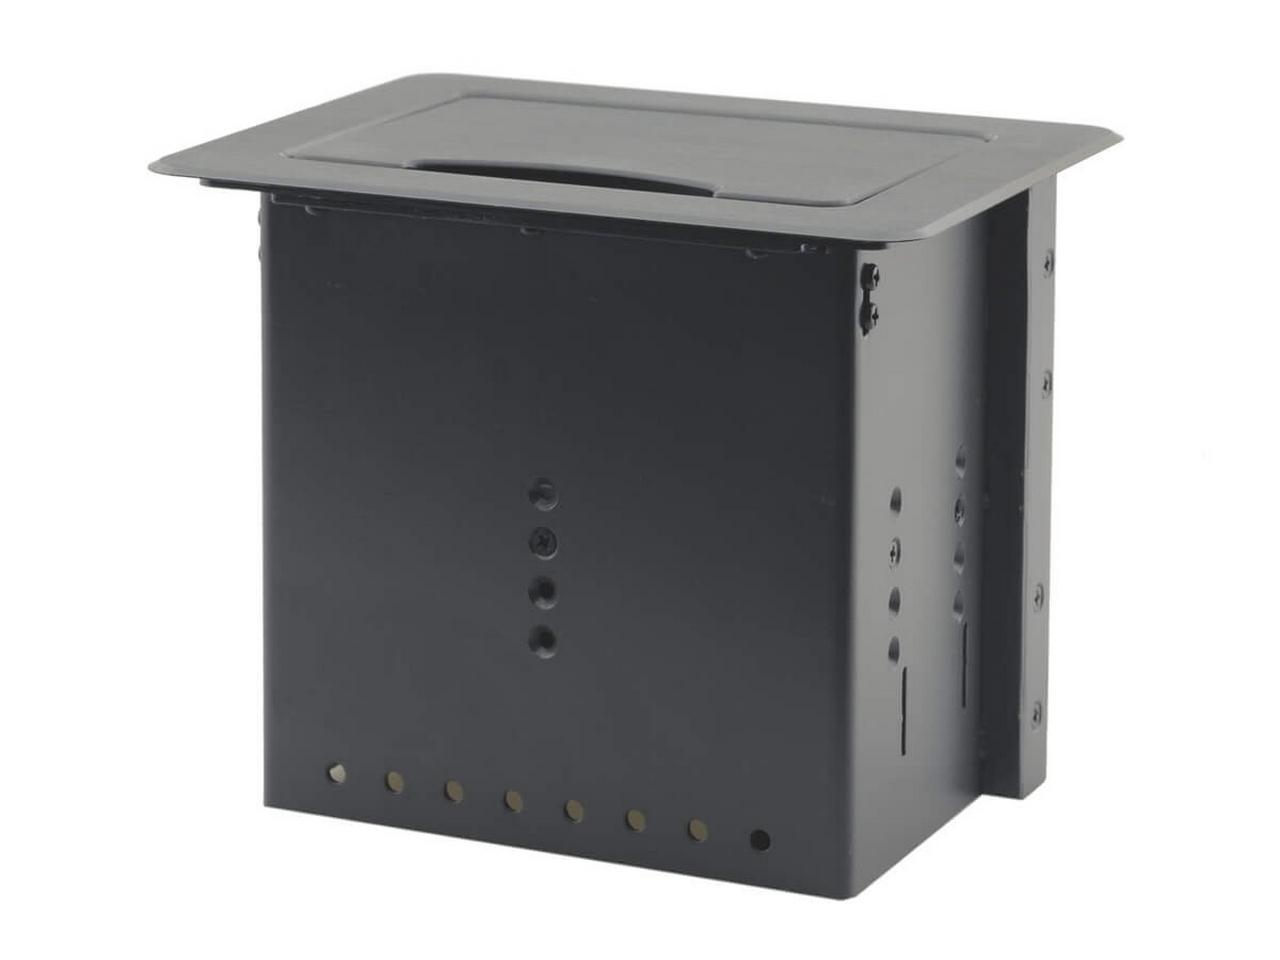 TBUS-5xl(B) Table Mount Modular Multi-Connection Solution/Black by Kramer